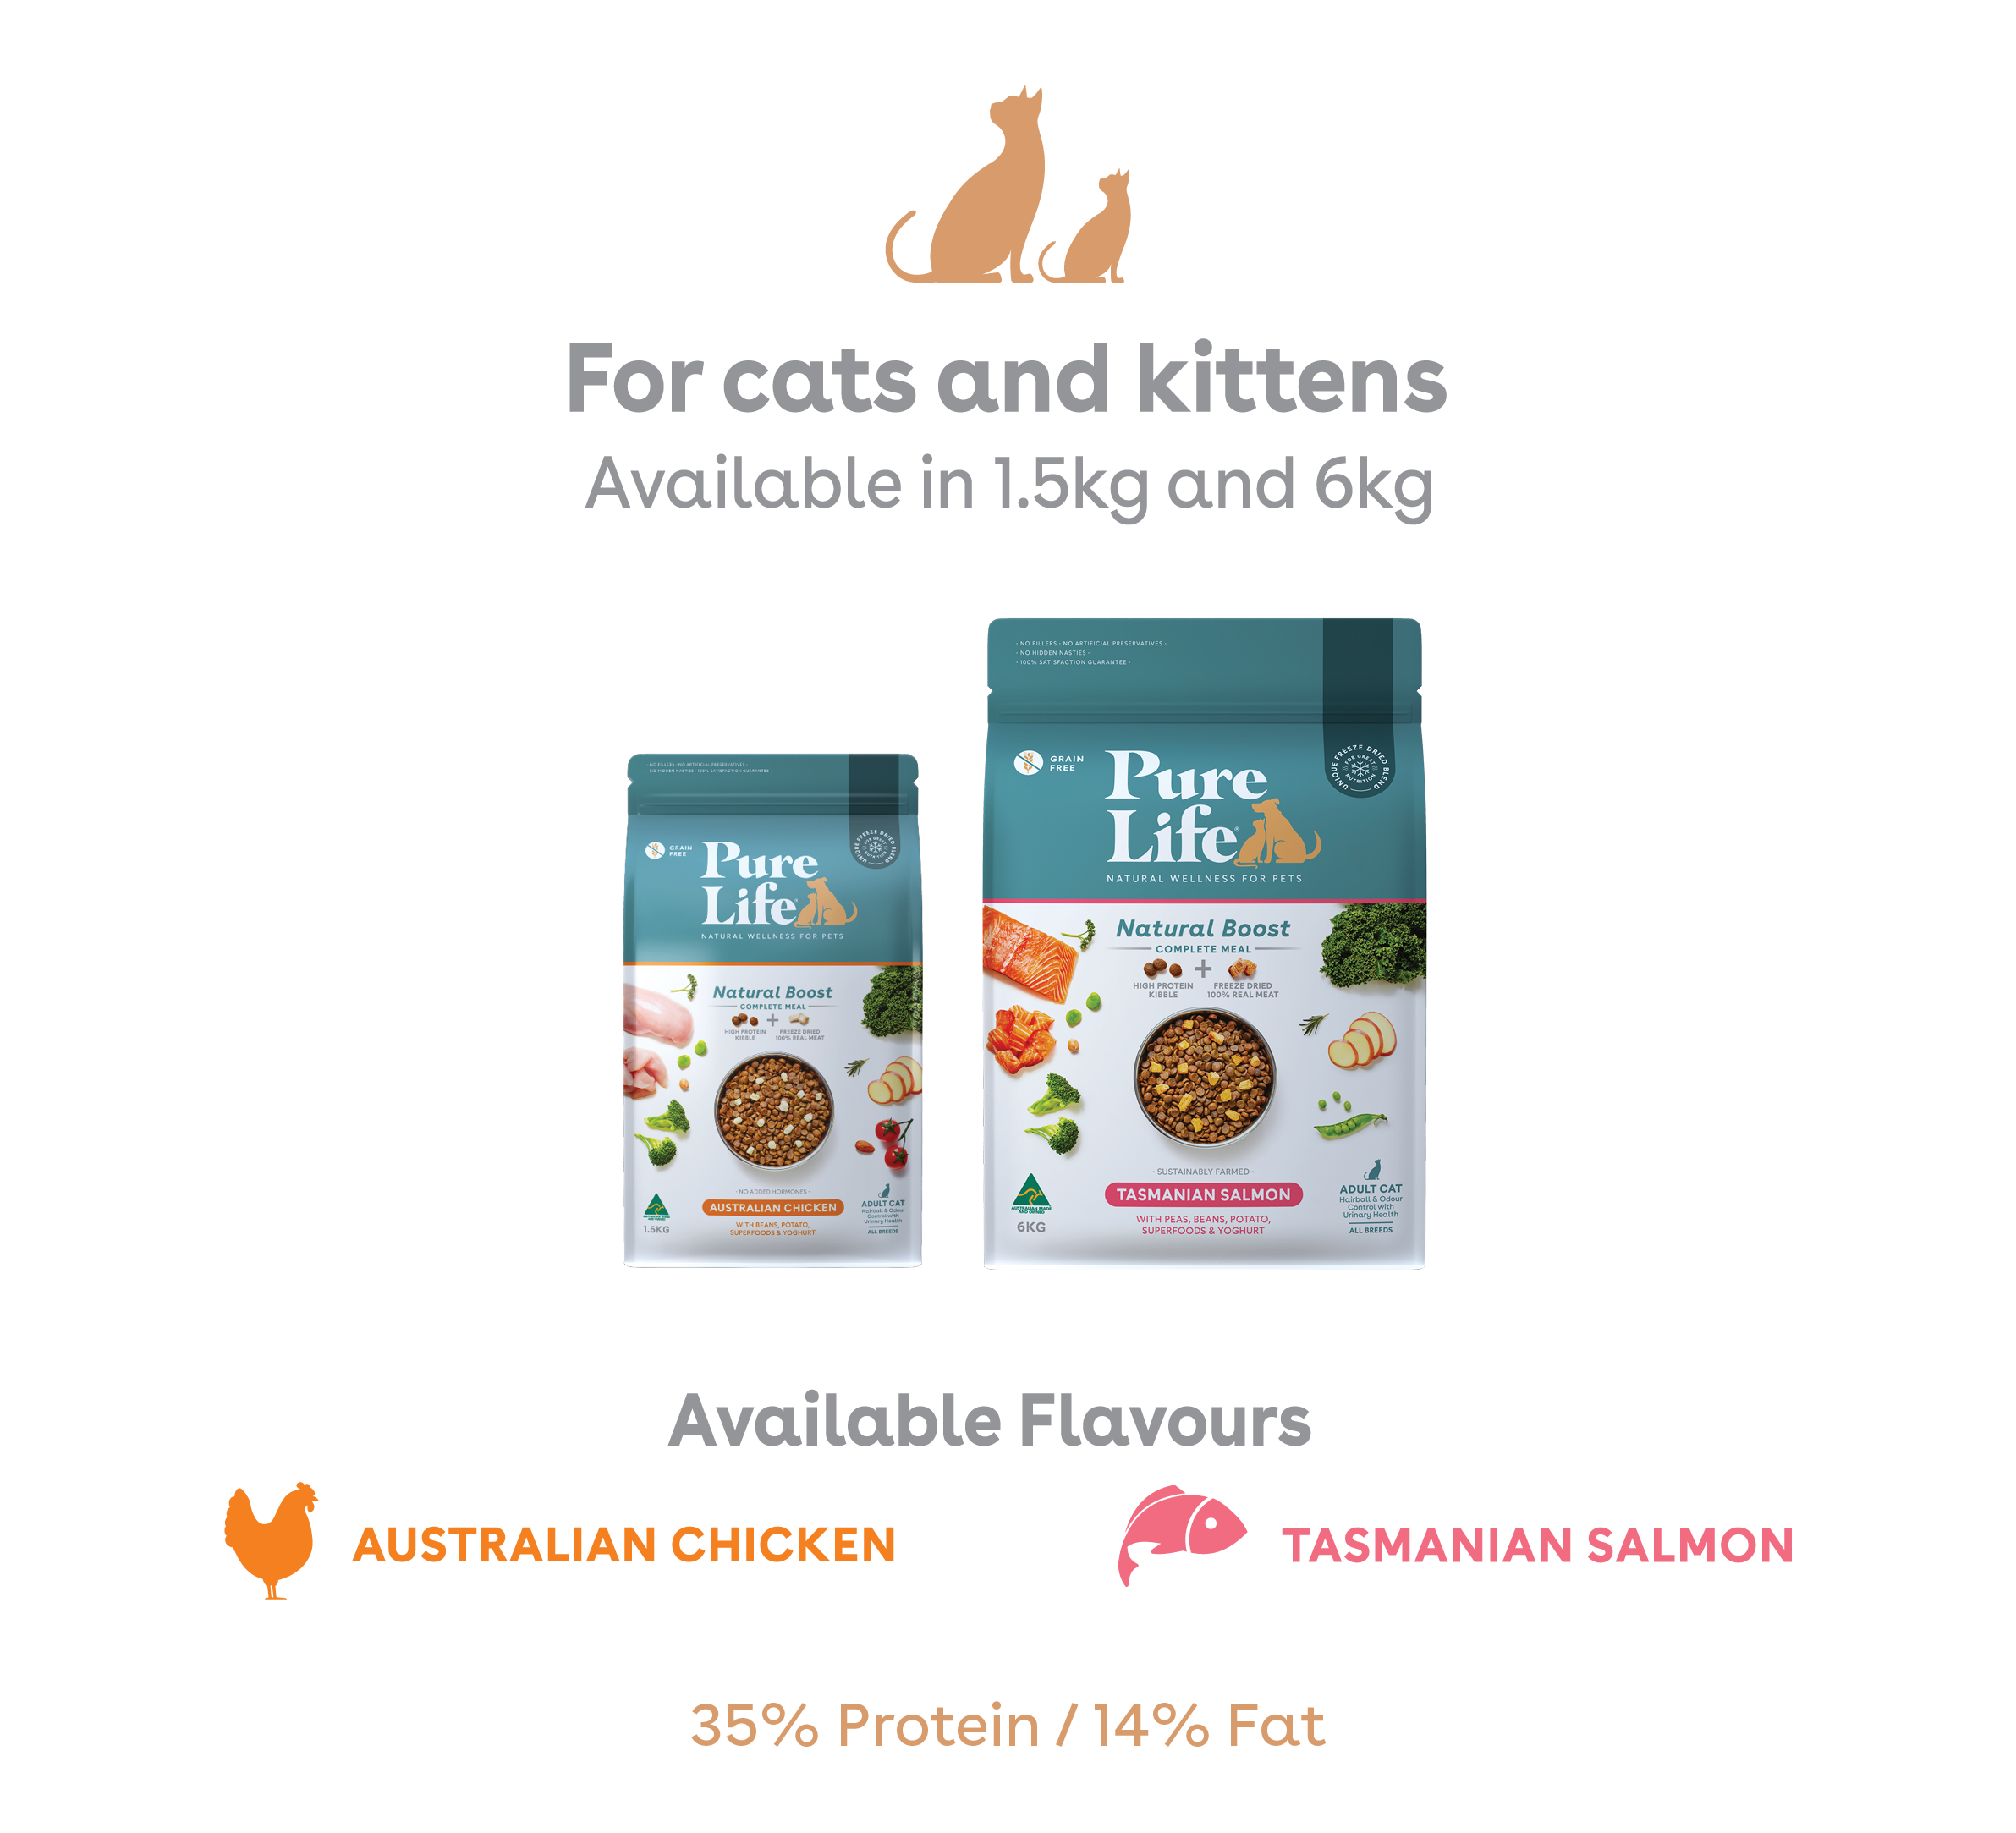 Pure Life for cats and kittens